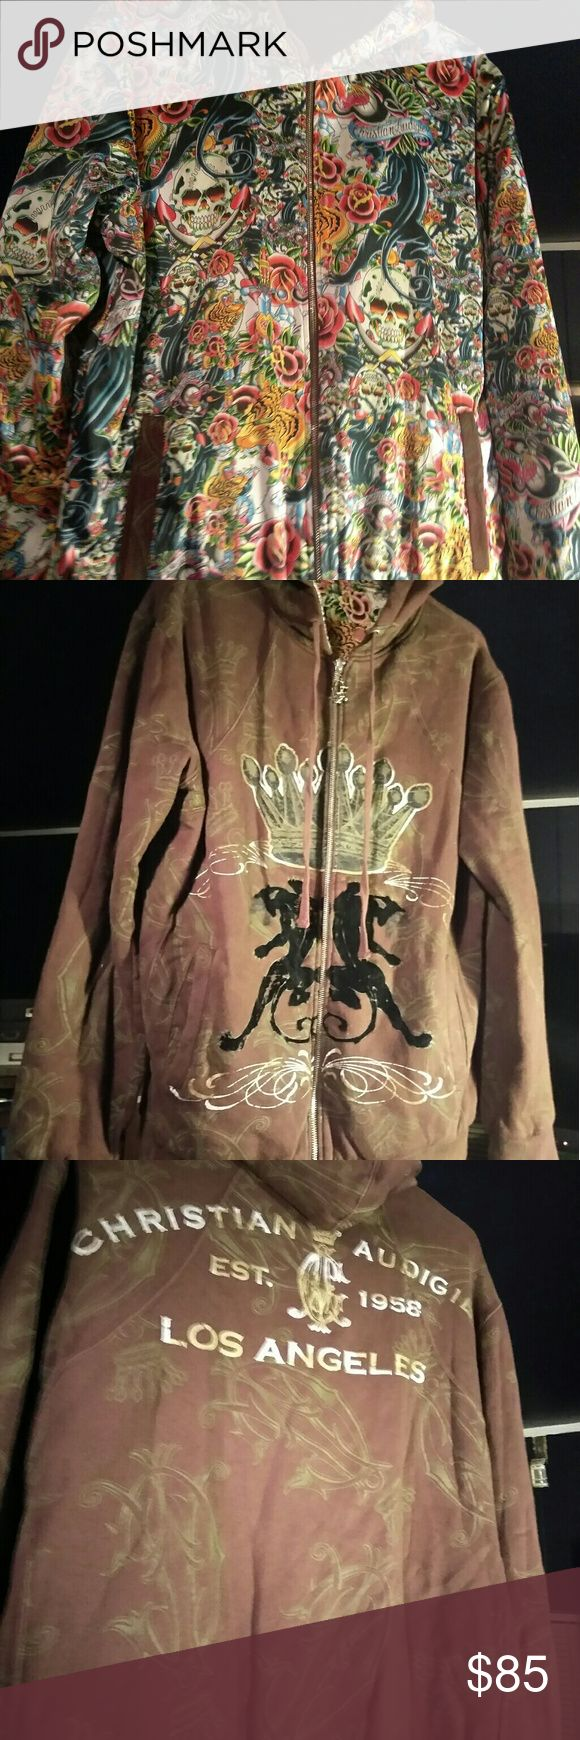 Christian Audigier reversible hoodie Same exact one that Rich Boy wore while rapping in his throw some D's on it official music video. The inside lining is silk and feels amazing. Cost $385.00. reversible brown and black jacket. Christian Audigier Jackets & Coats